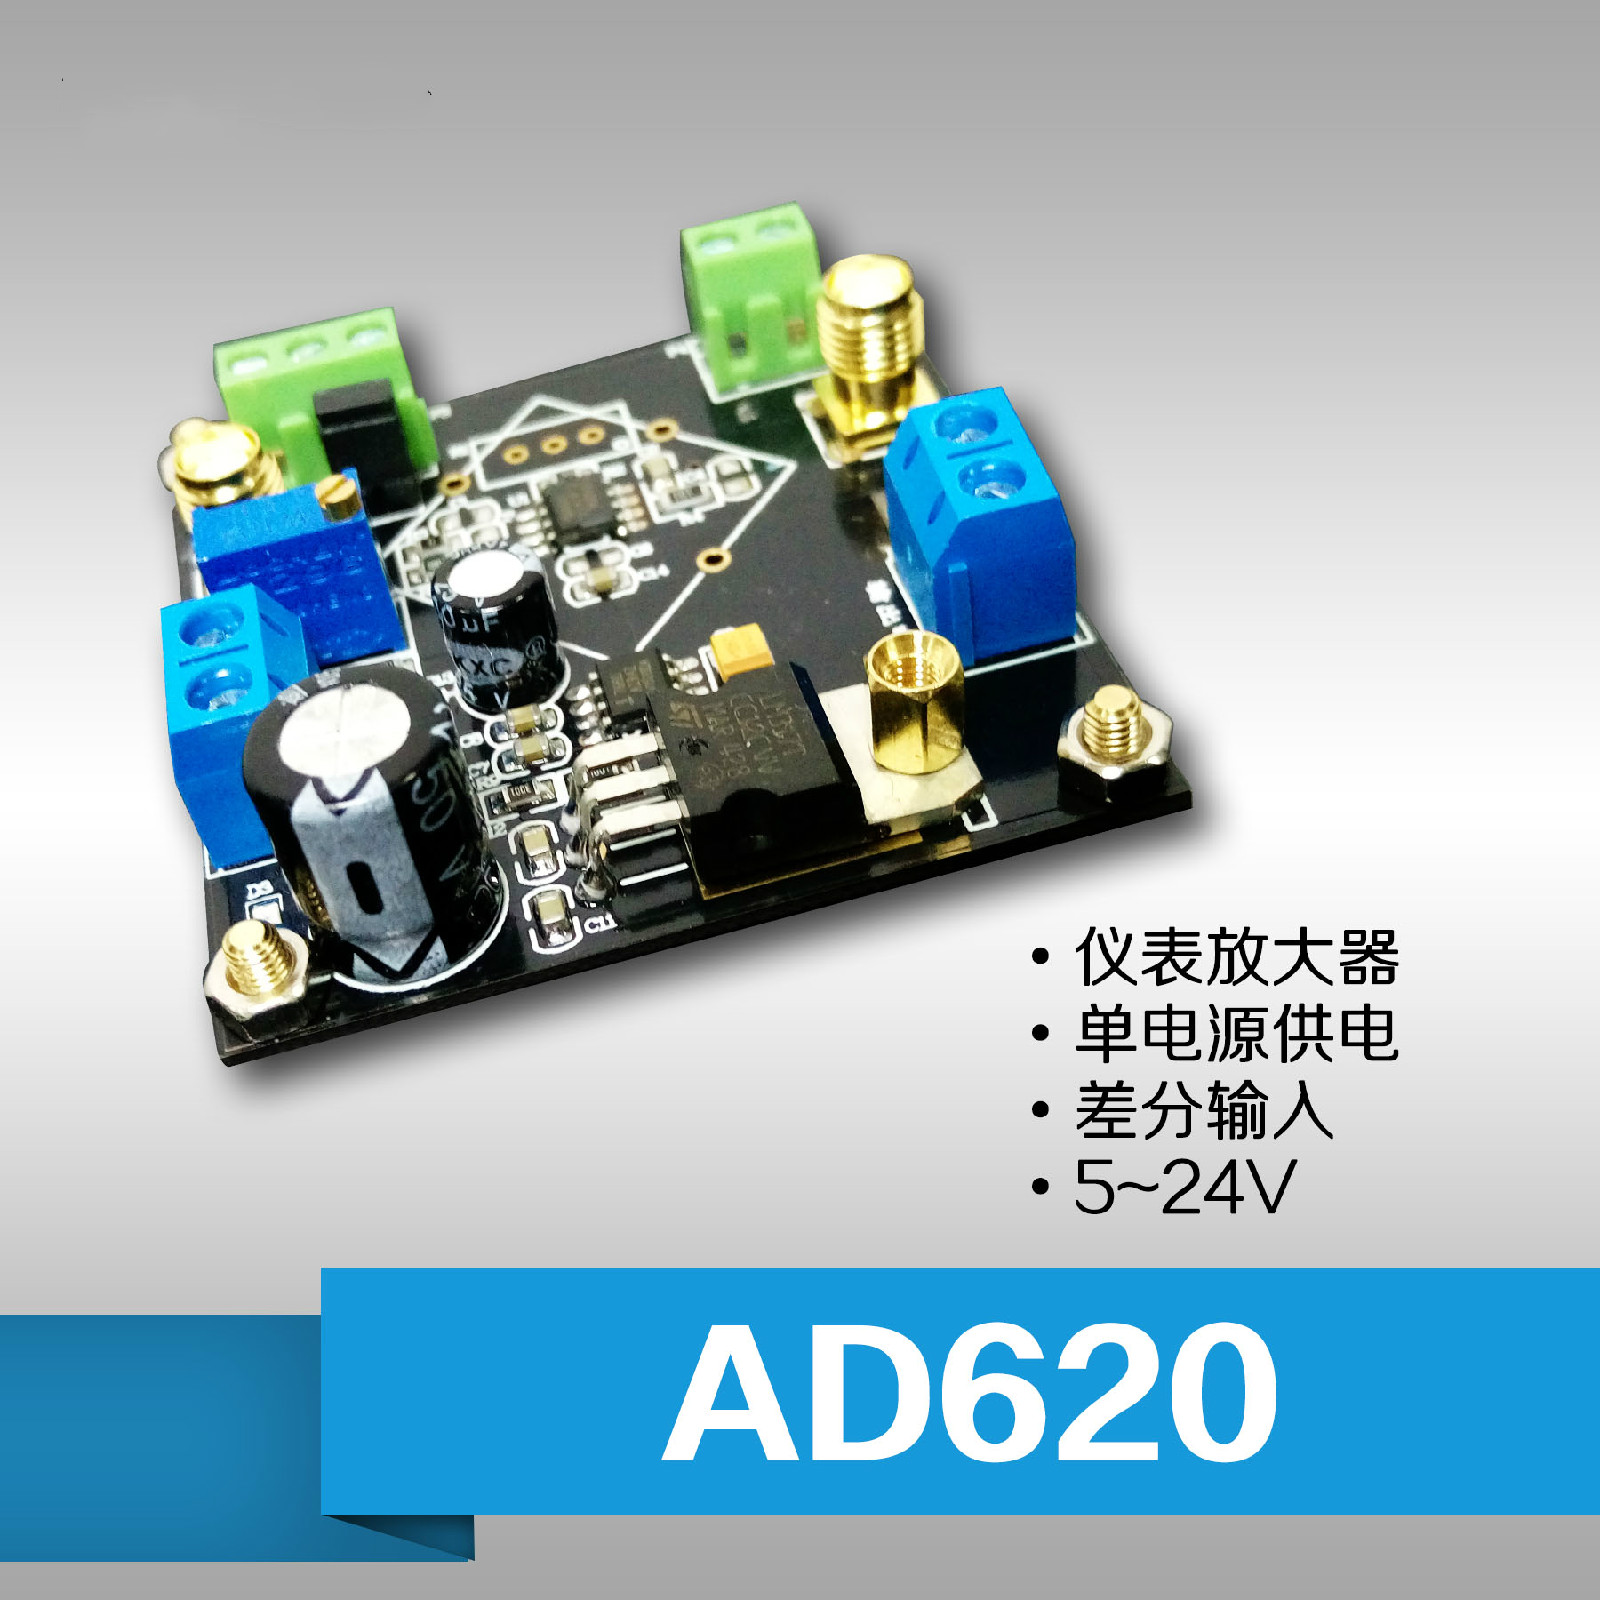 DC AC Instrument Amplifier AD620 Voltage Amplifier Module Small Signal Single ended Differential